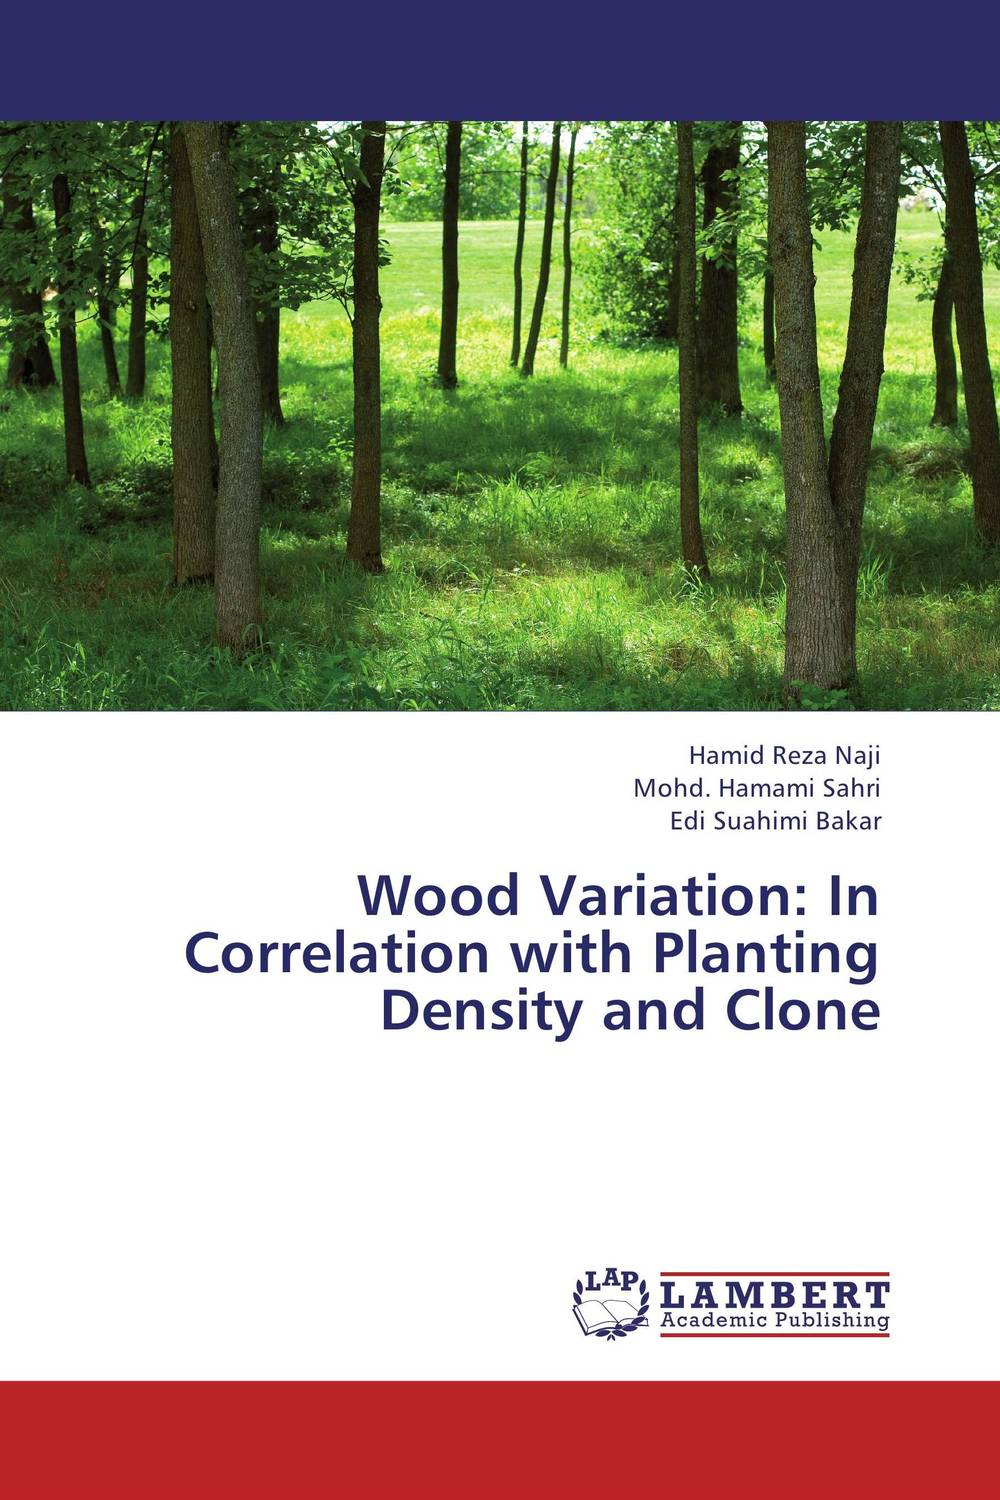 Wood Variation: In Correlation with Planting Density and Clone linguistic variation in a multilingual setting